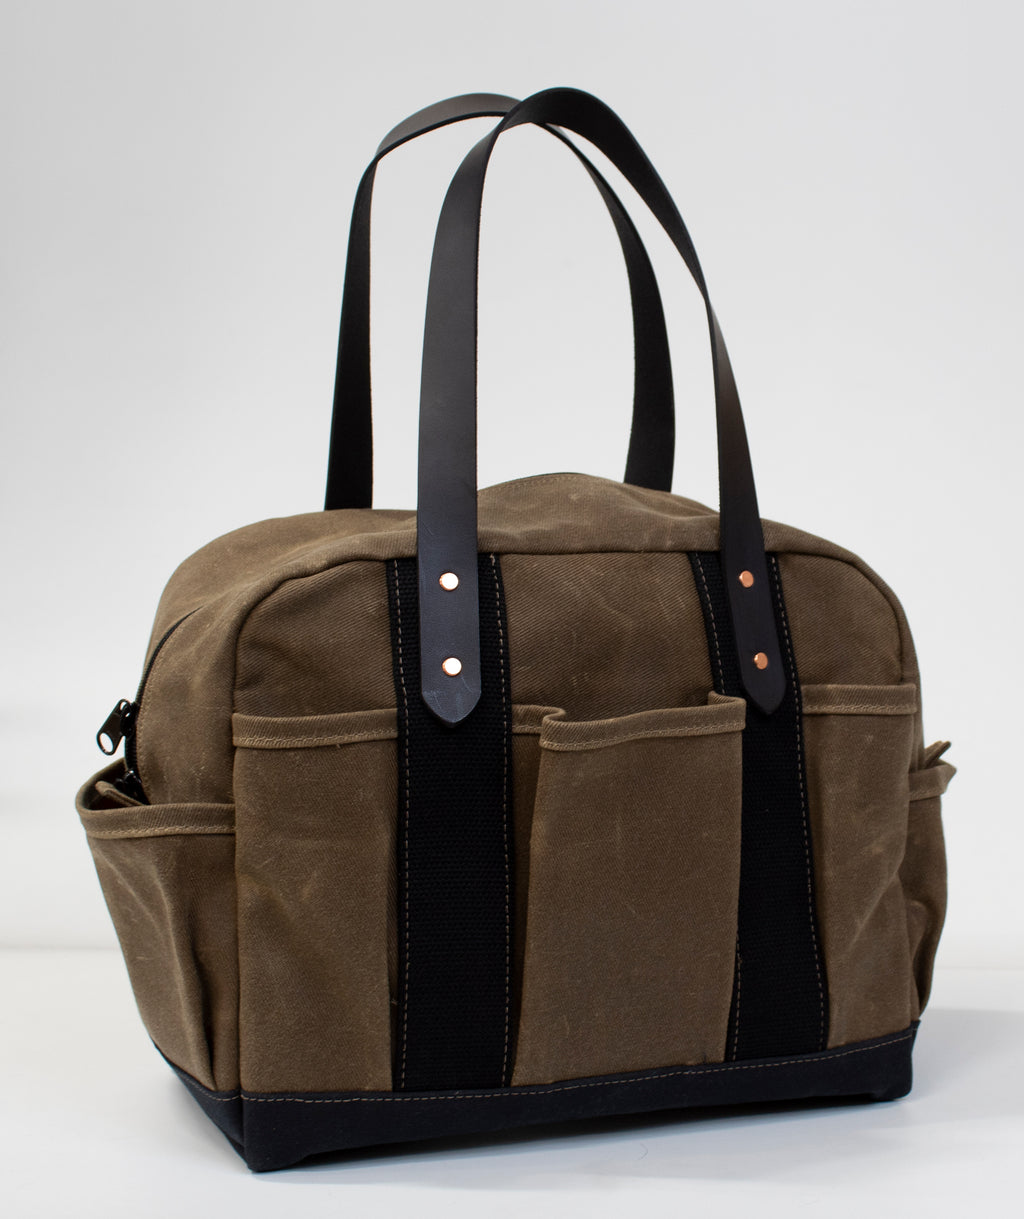 LUSB169 Journeyman Tool Bag